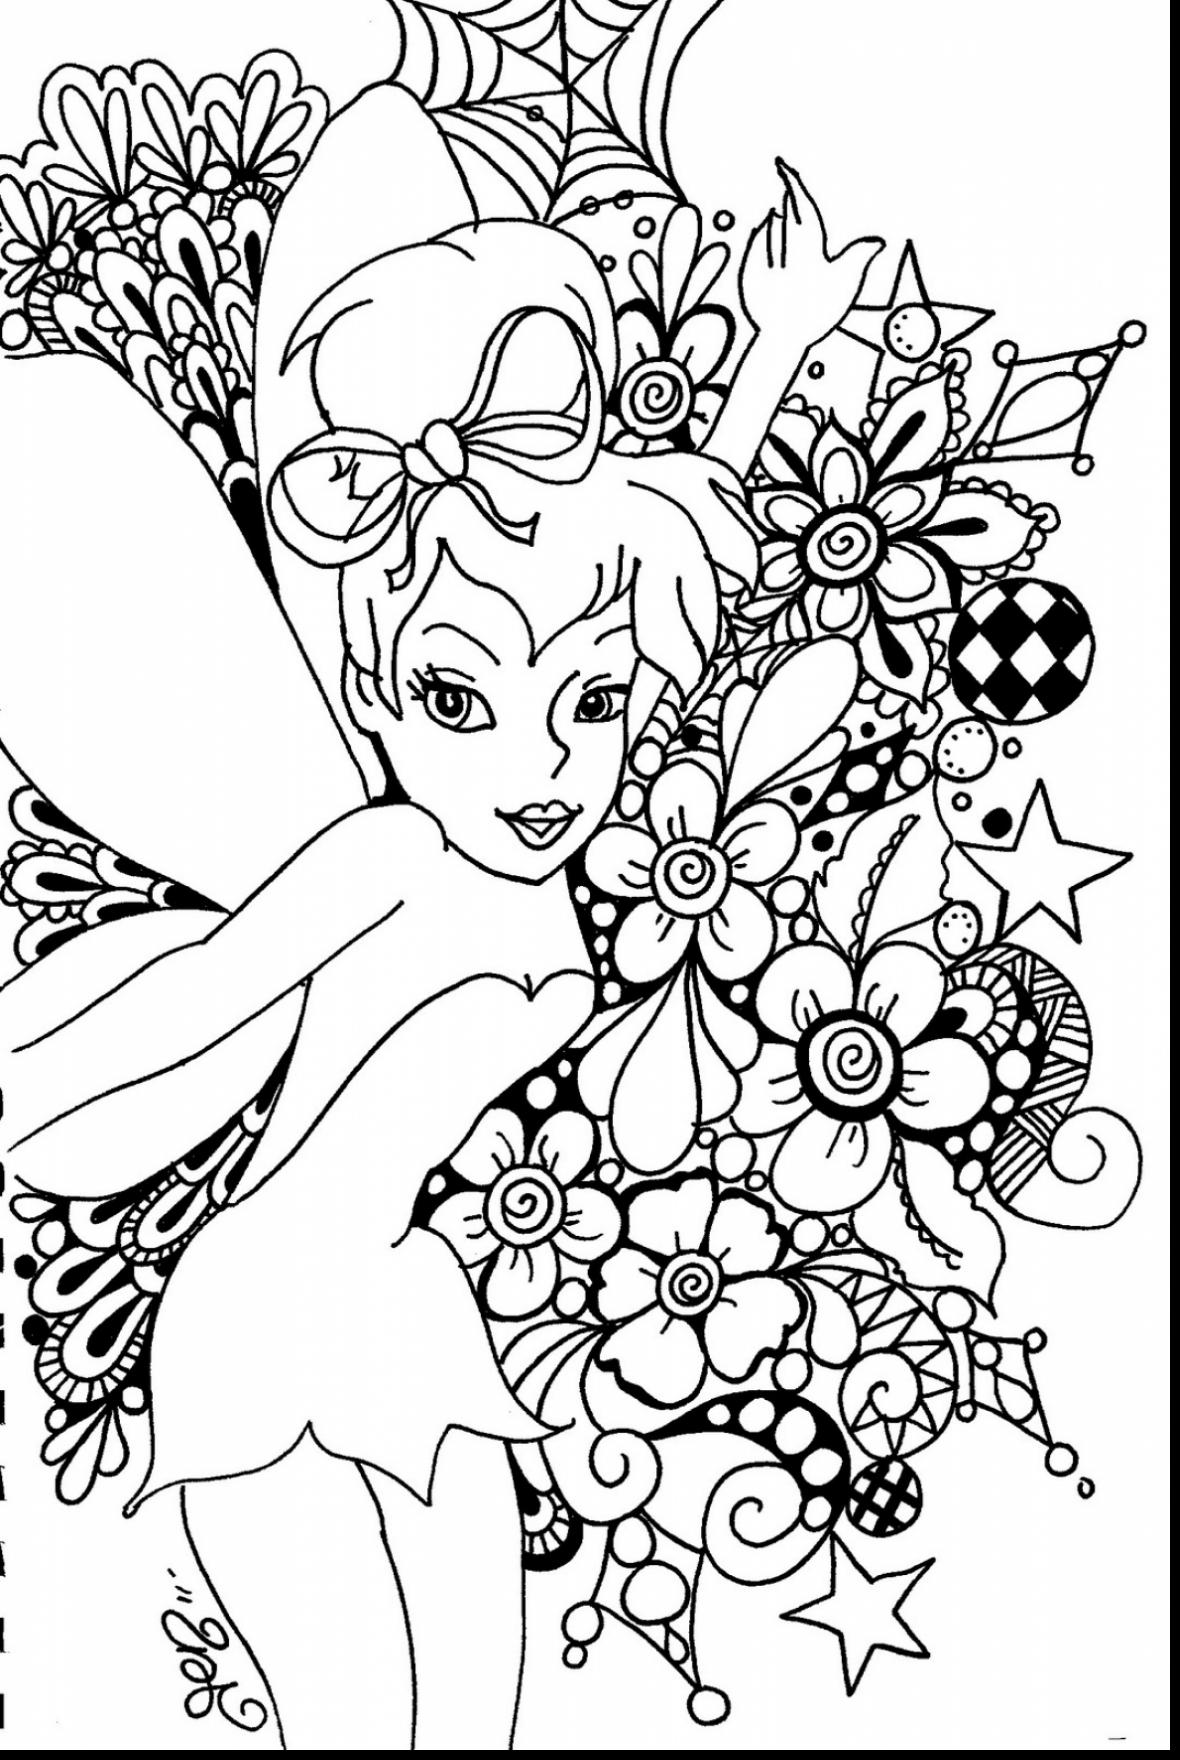 Tinkerbell Coloring Pages At Getdrawings Com Free For Personal Use